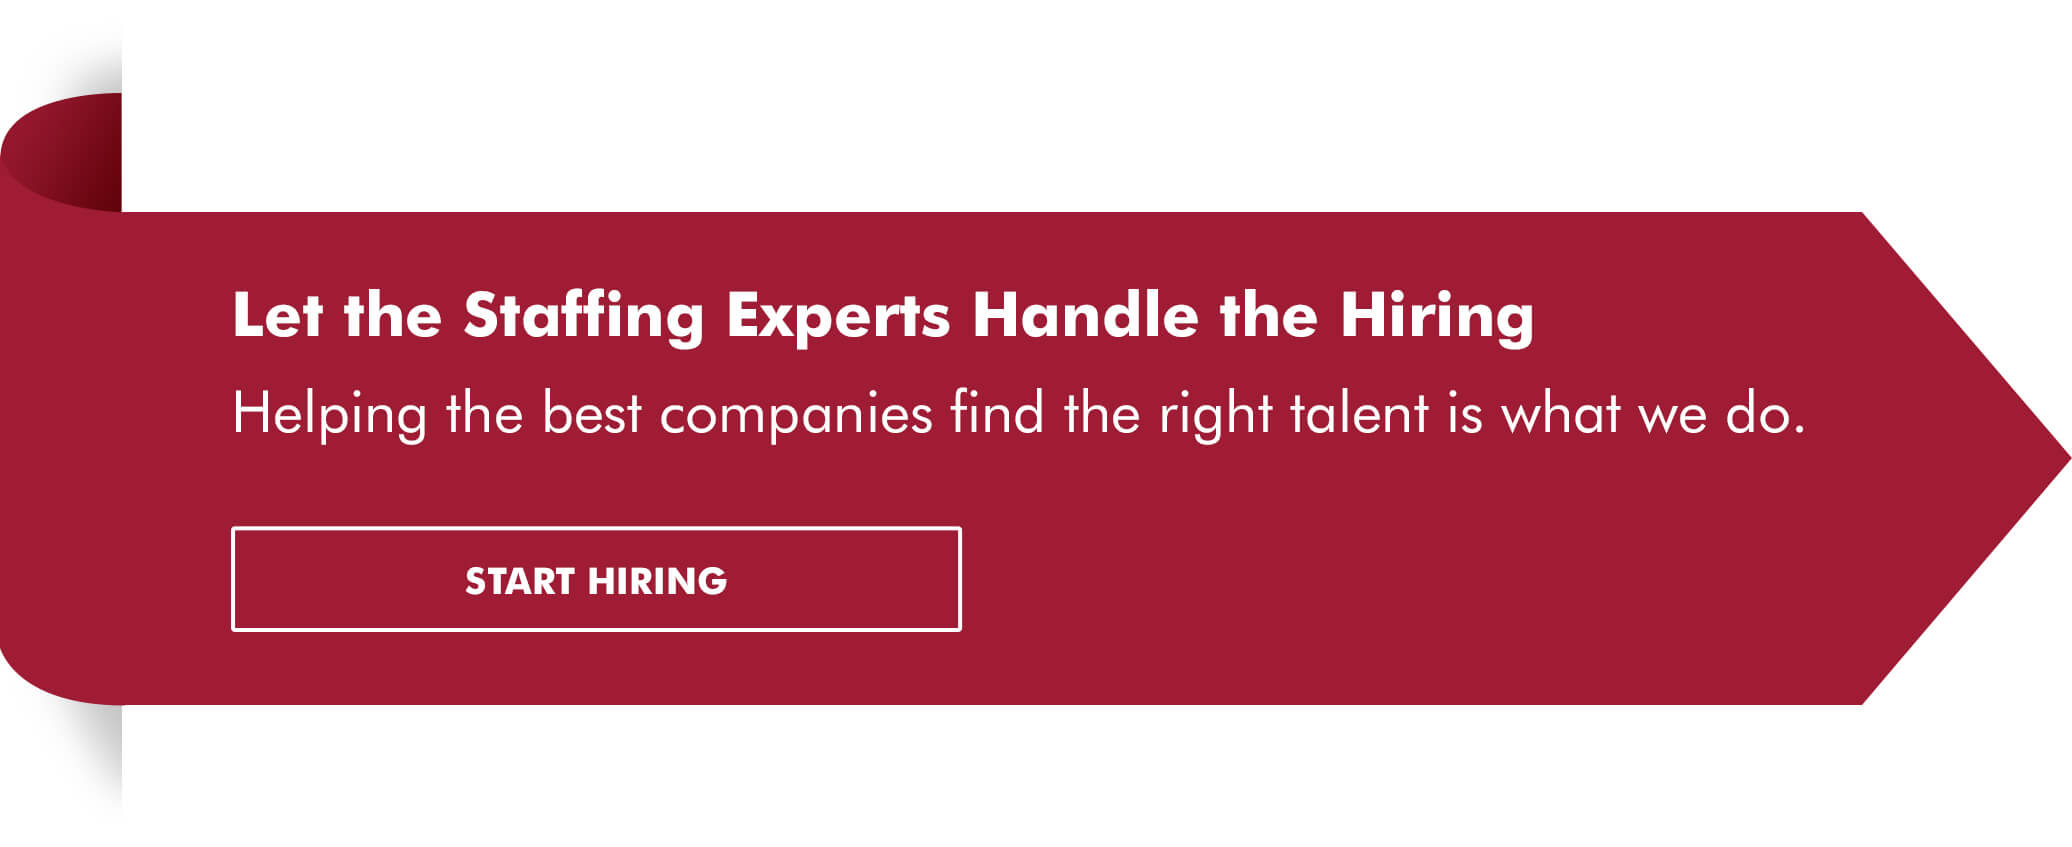 Interview Questions for Hiring ERP Analyst Experts | Robert Half